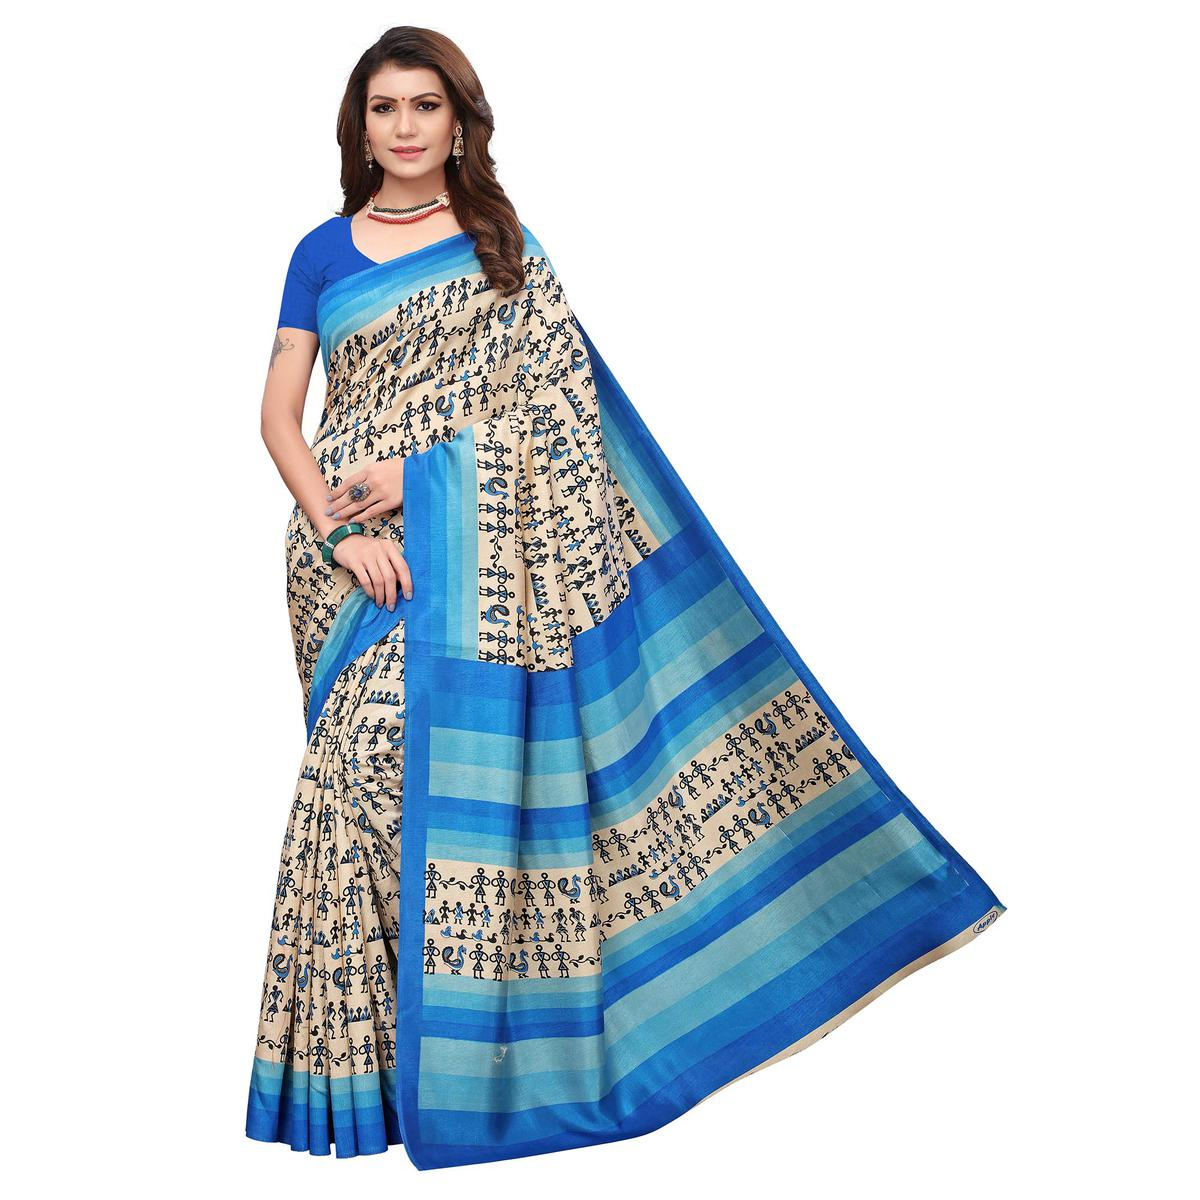 Sensational Off White - Blue Colored Casual Wear Printed Art Silk Saree